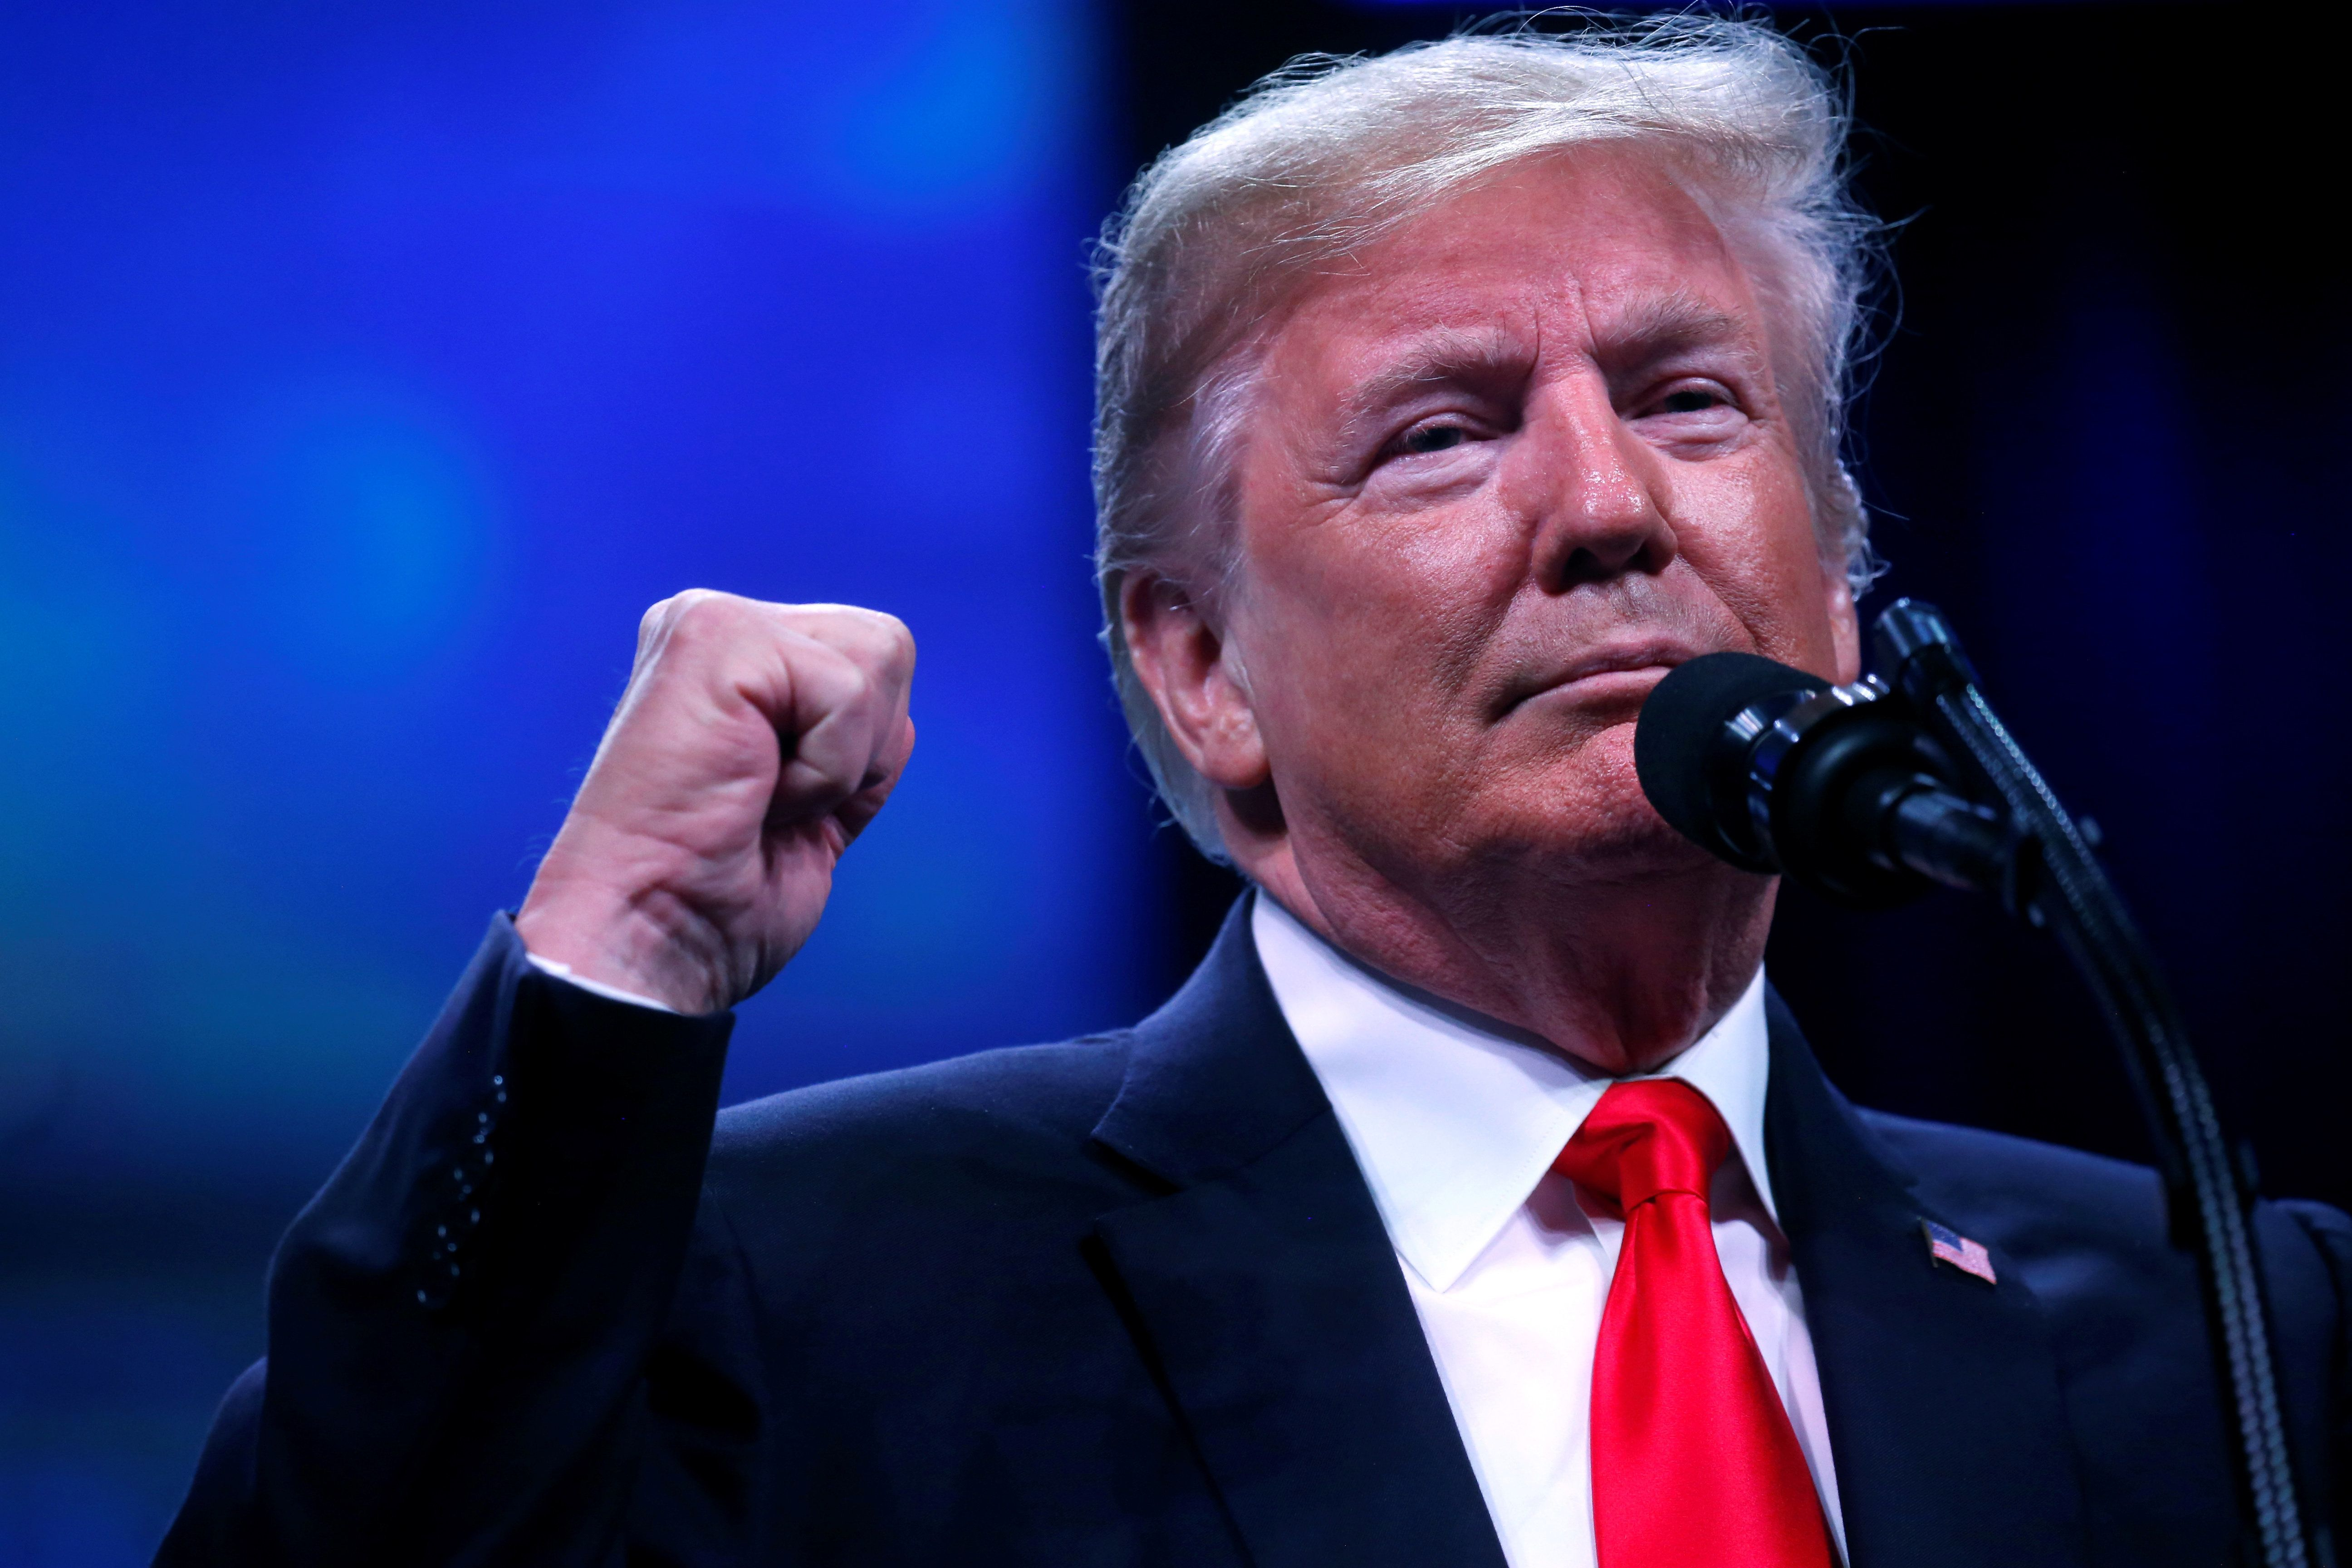 U.S. President Donald Trump speaks at the International Association of Chiefs of Police Annual Convention at the Orange County Convention Center in Orlando, FL, U.S., October 8, 2018. REUTERS/Leah Millis